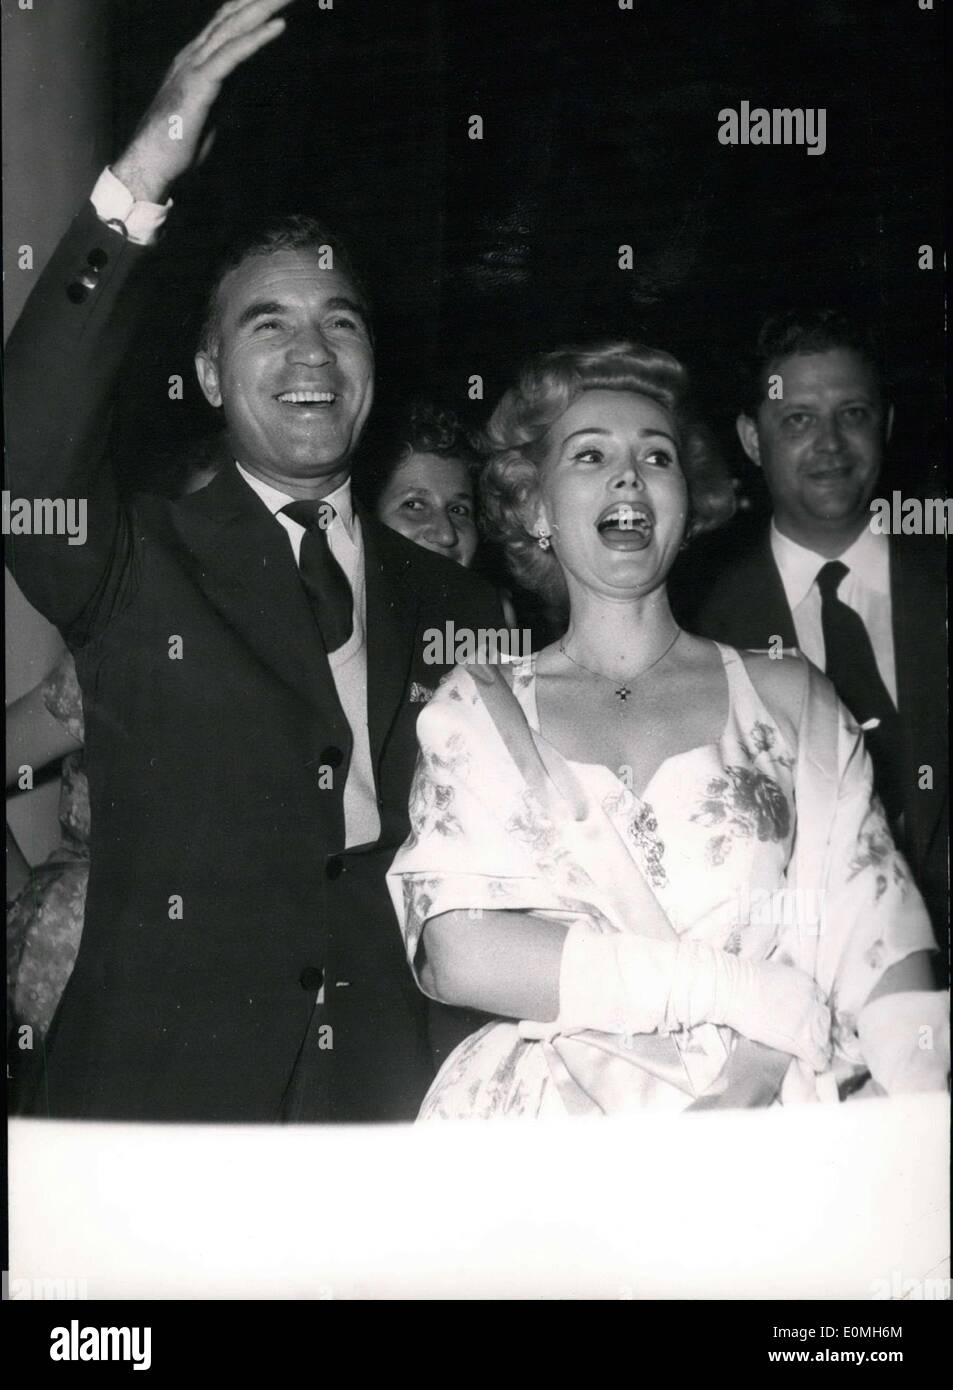 May 09, 1955 - Cannes Cine Festival. Zsa Zsa Gabor and Porfirio Rubiroso arrive at the party given by the American Delegation at the Ambassadors'. Cannes. - Stock Image